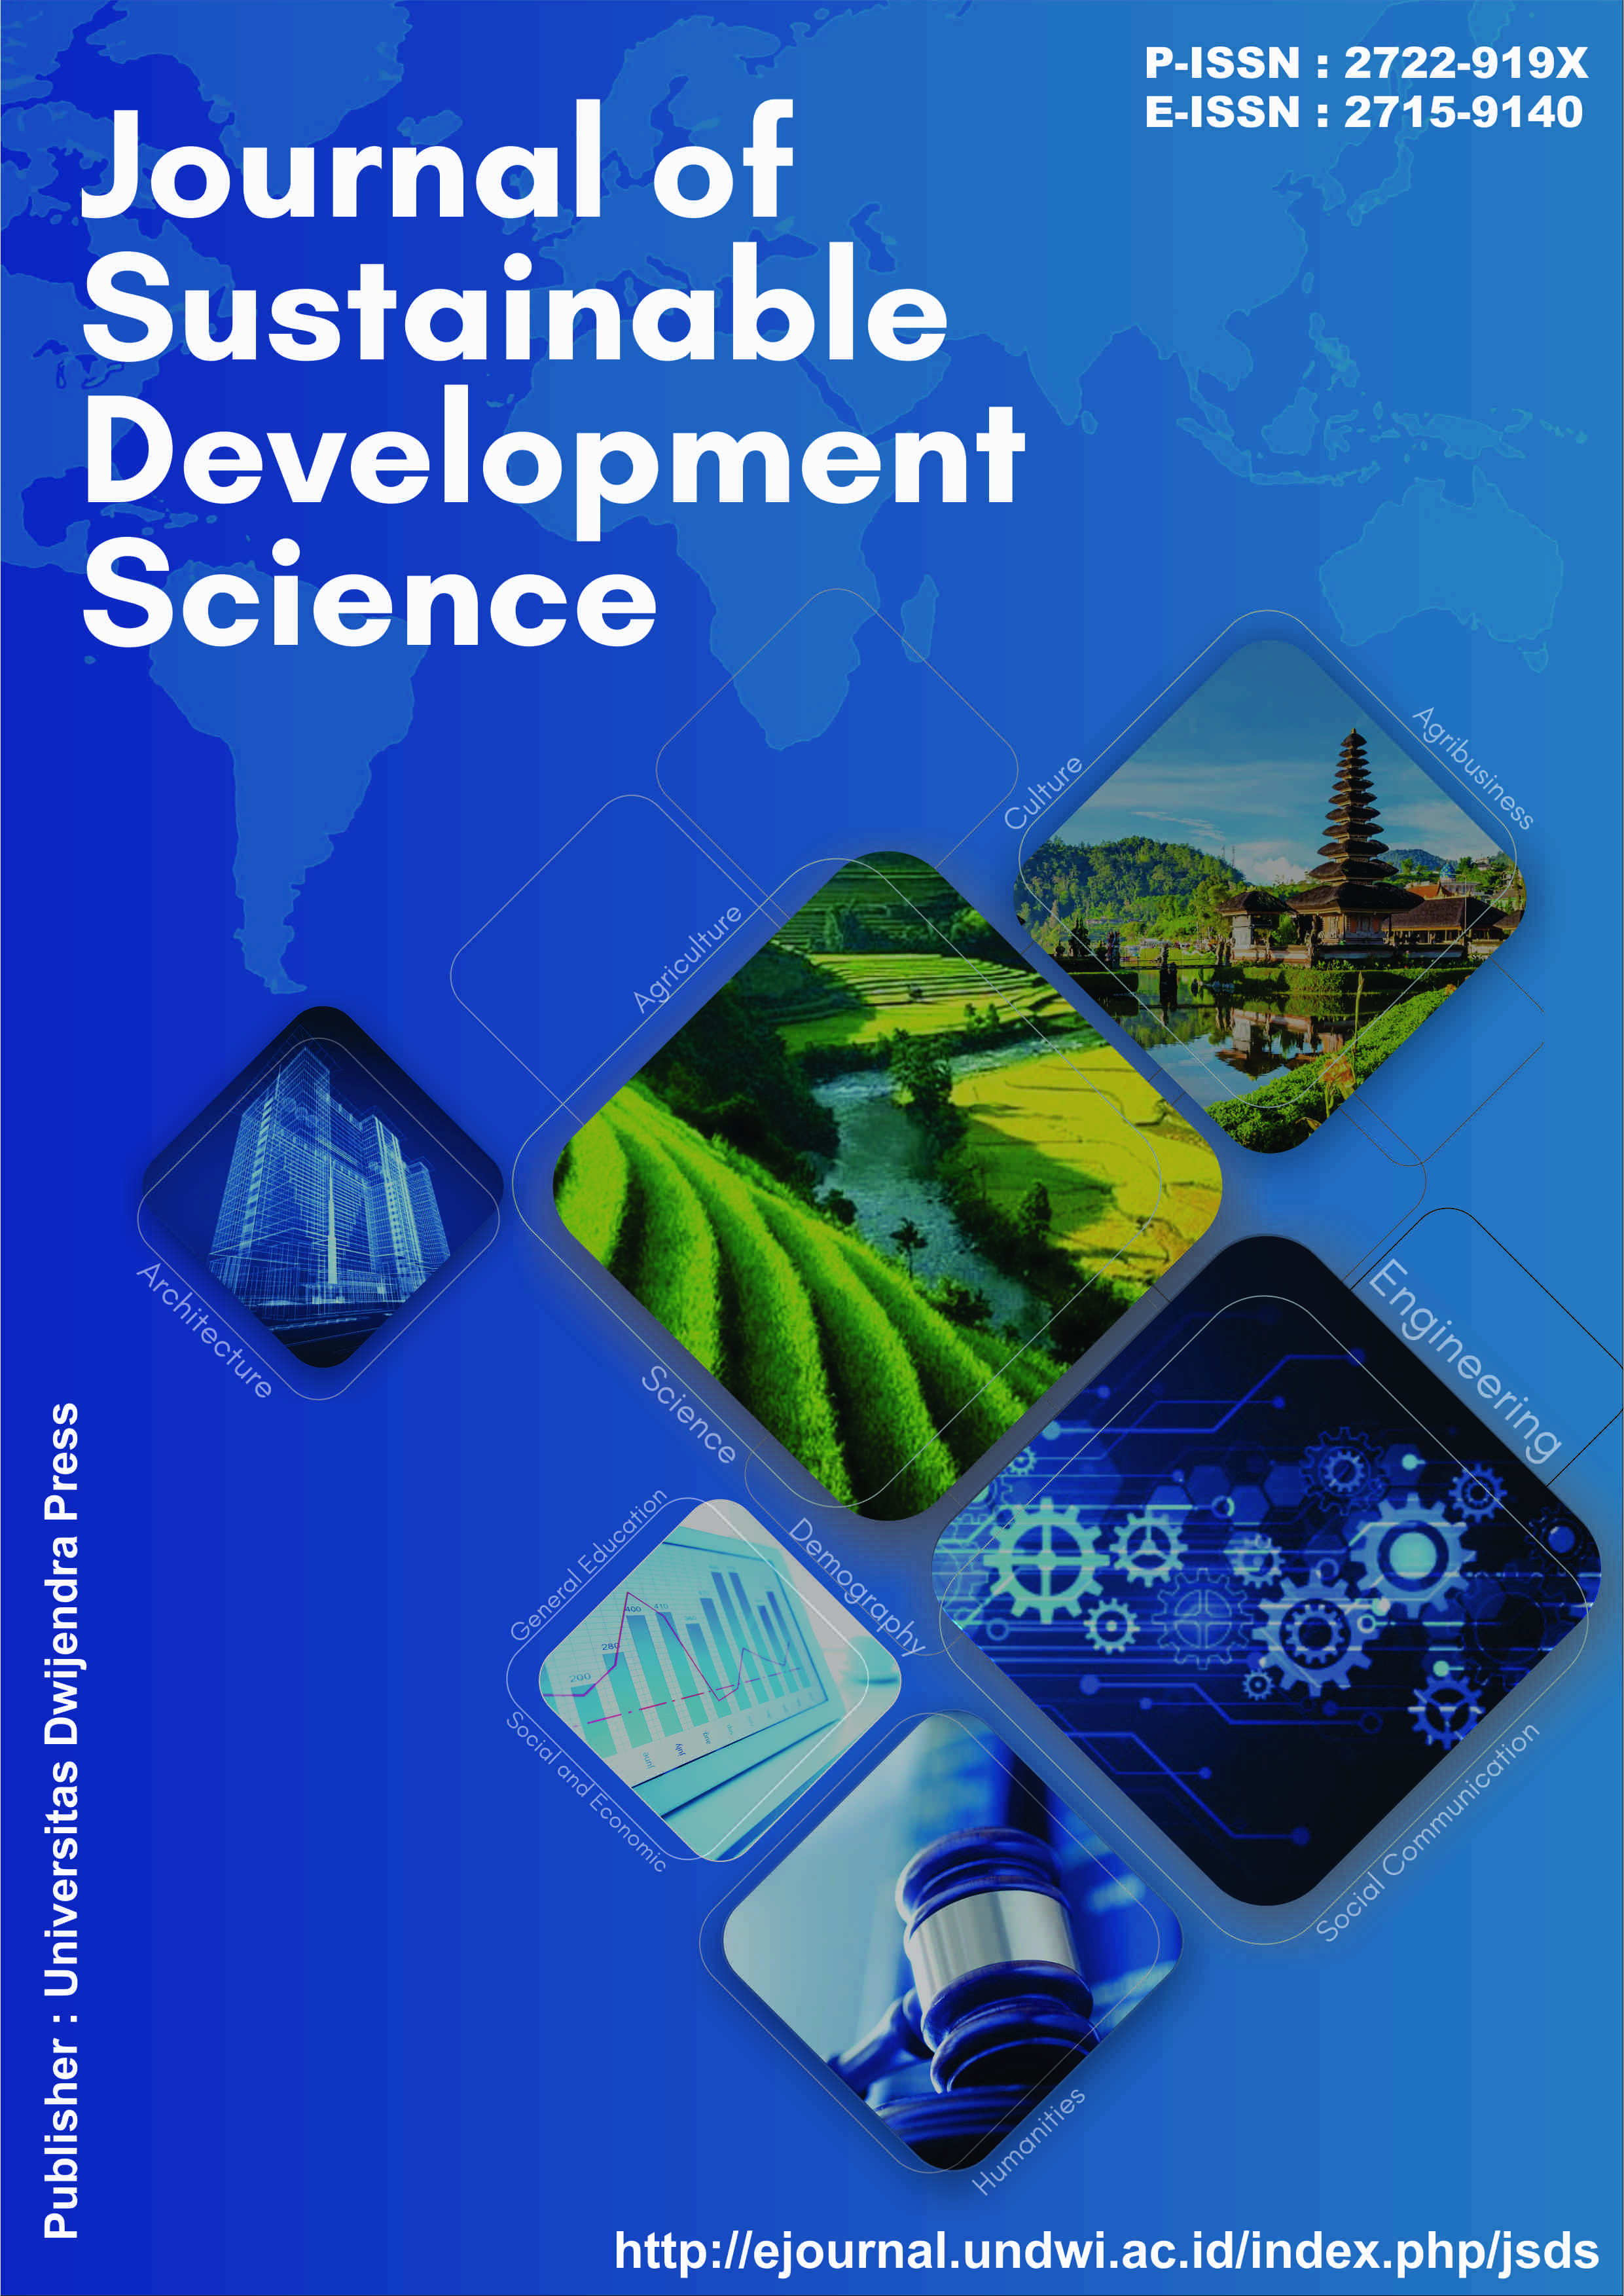 Journal of Sustainable Development Science